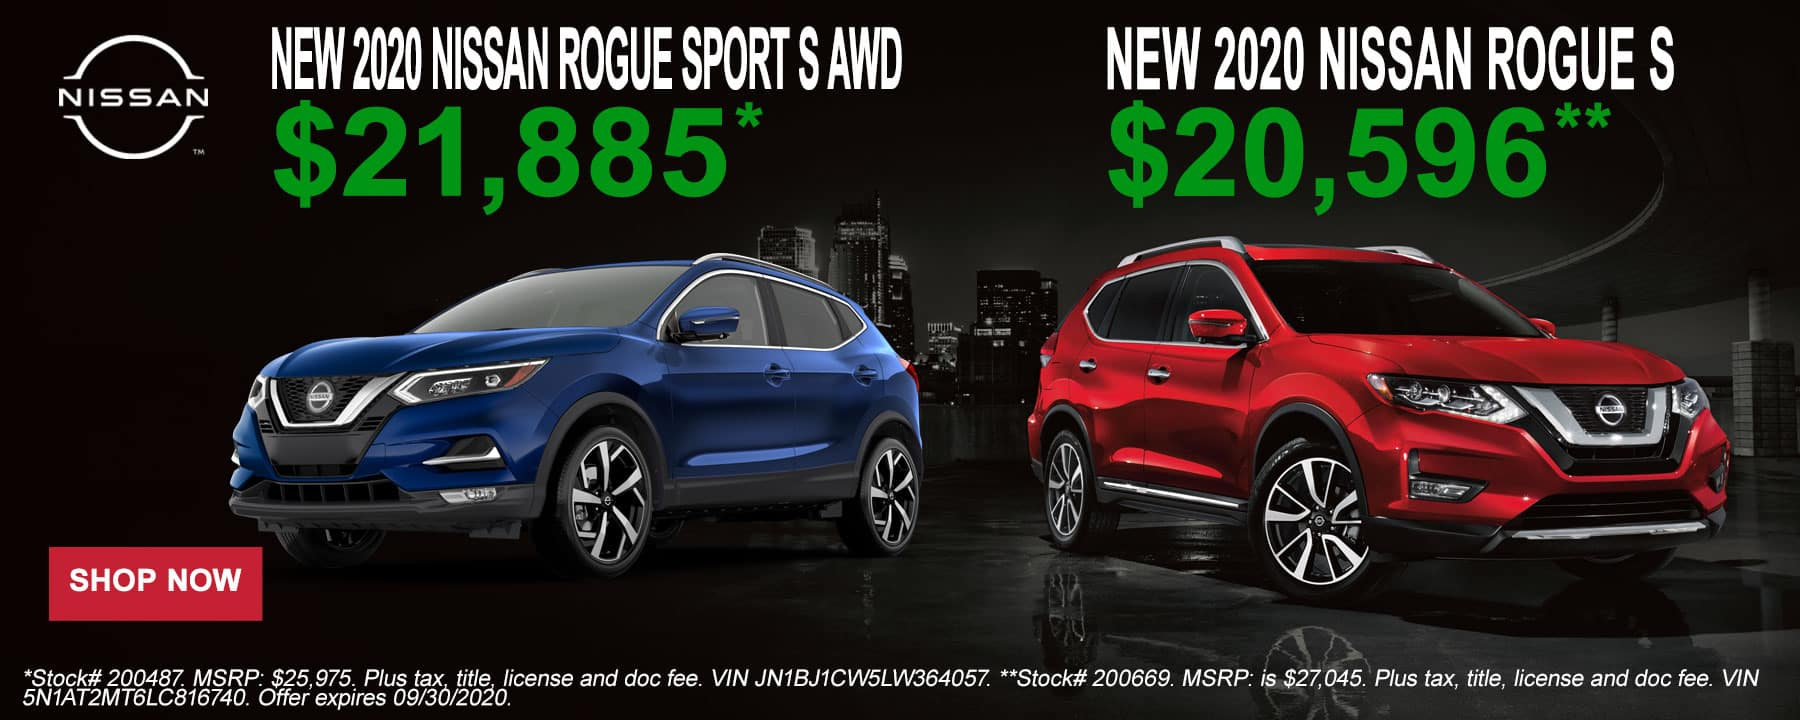 2020 Nissan Rogue and Rogue Sport September Offer at Star Nissan